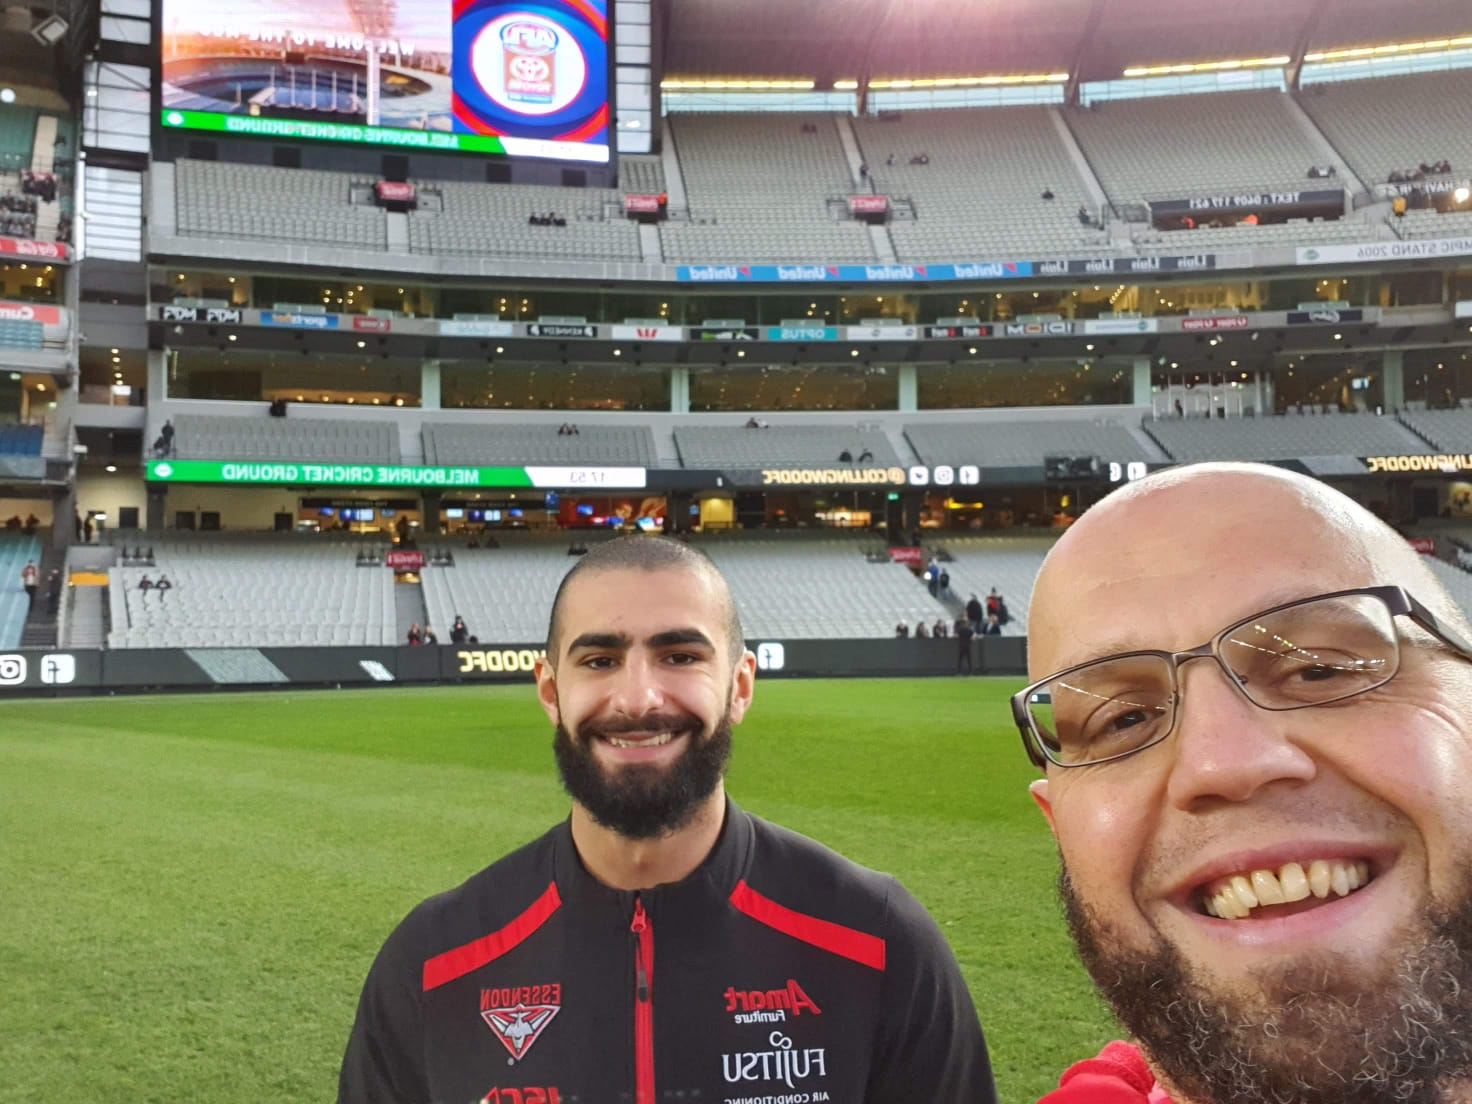 Wassim Rafihi with Adam Saad, AFL star at the stadium